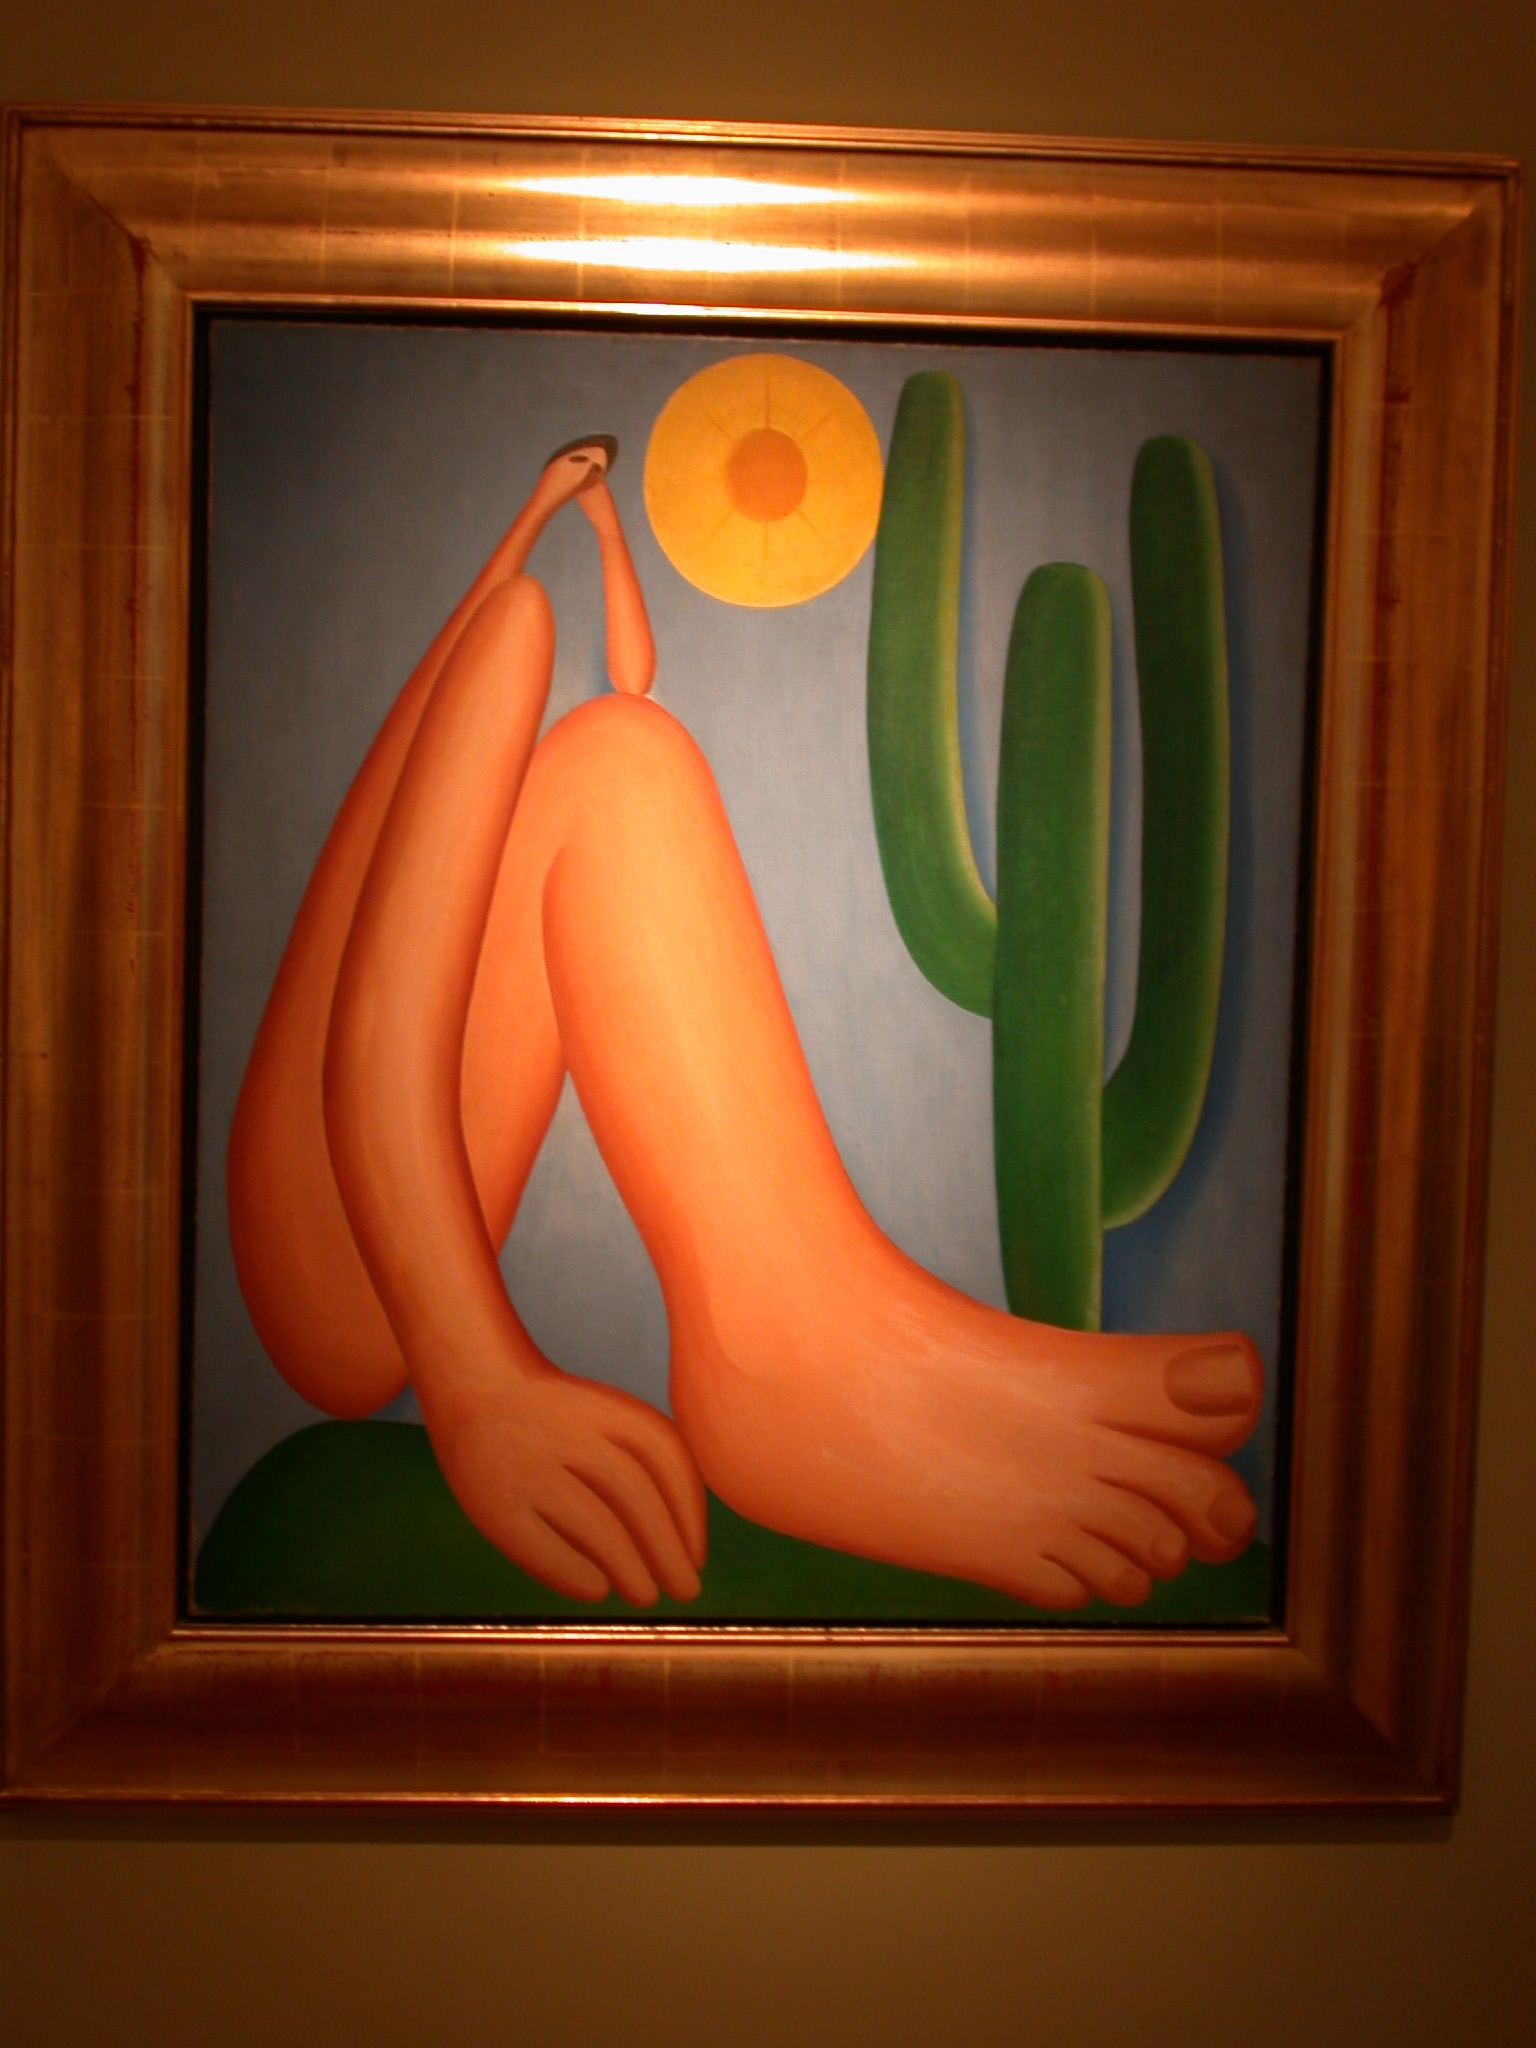 Aoapora, Painting by Tarsila do Amaral, MALBA Museum, Buenos Aires, Argentina